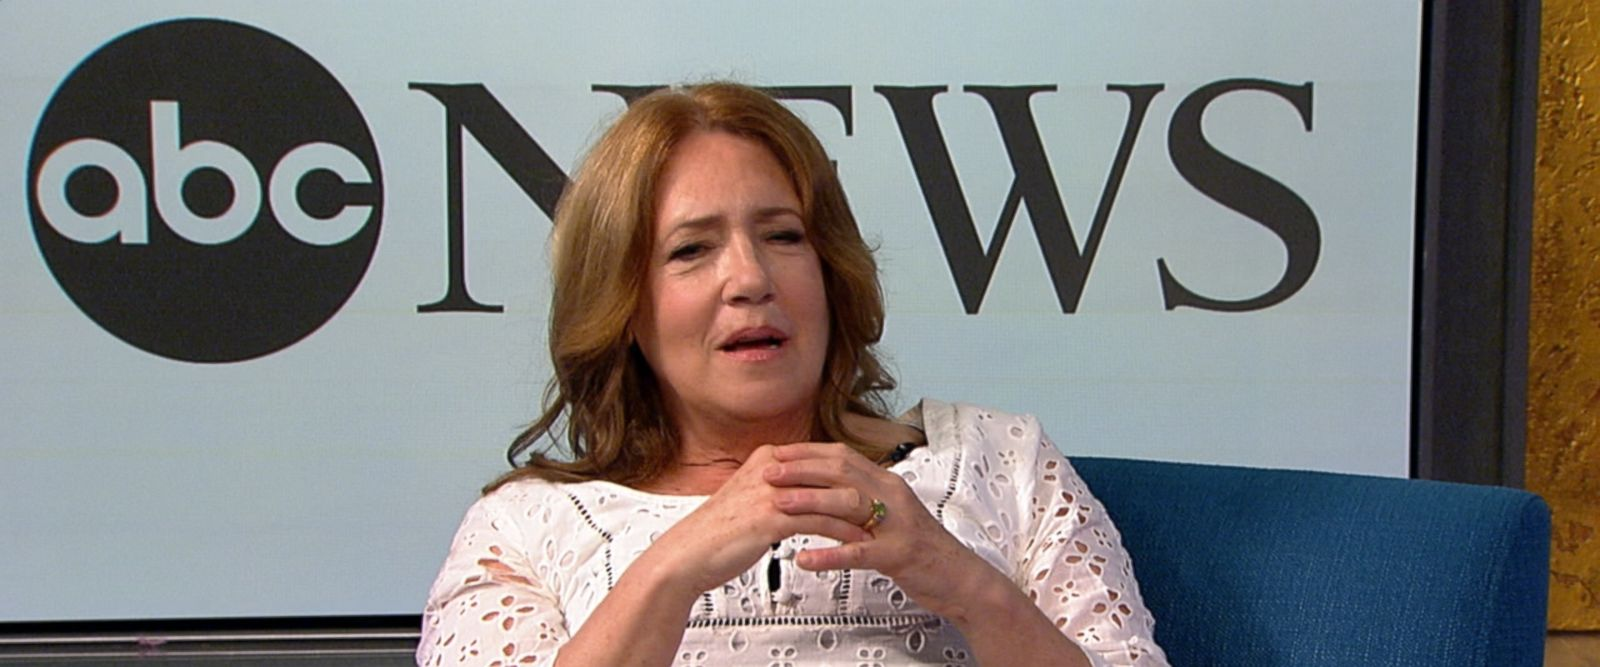 VIDEO: 'Handmaid's' Ann Dowd on finding inspiration for her role